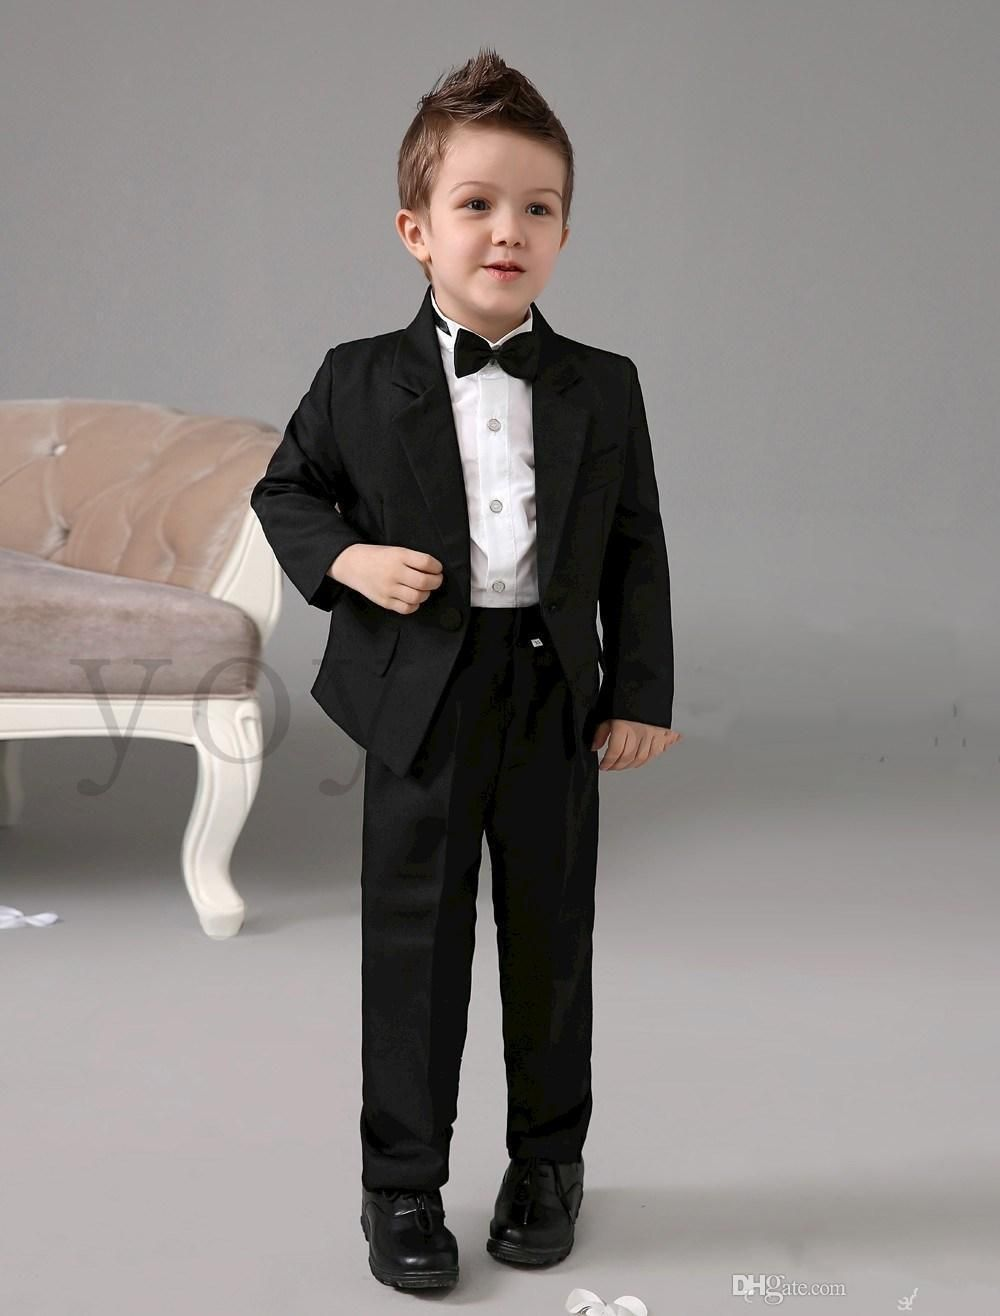 b0635b8697c040 Formal Wear Kids Four Pieces Luxurious Black Ring Bearer Suits Cool Boys  Tuxedo With Black Bow Tie Kids Formal Dress Boys Suits Fashion Kids Suit  Kids ...